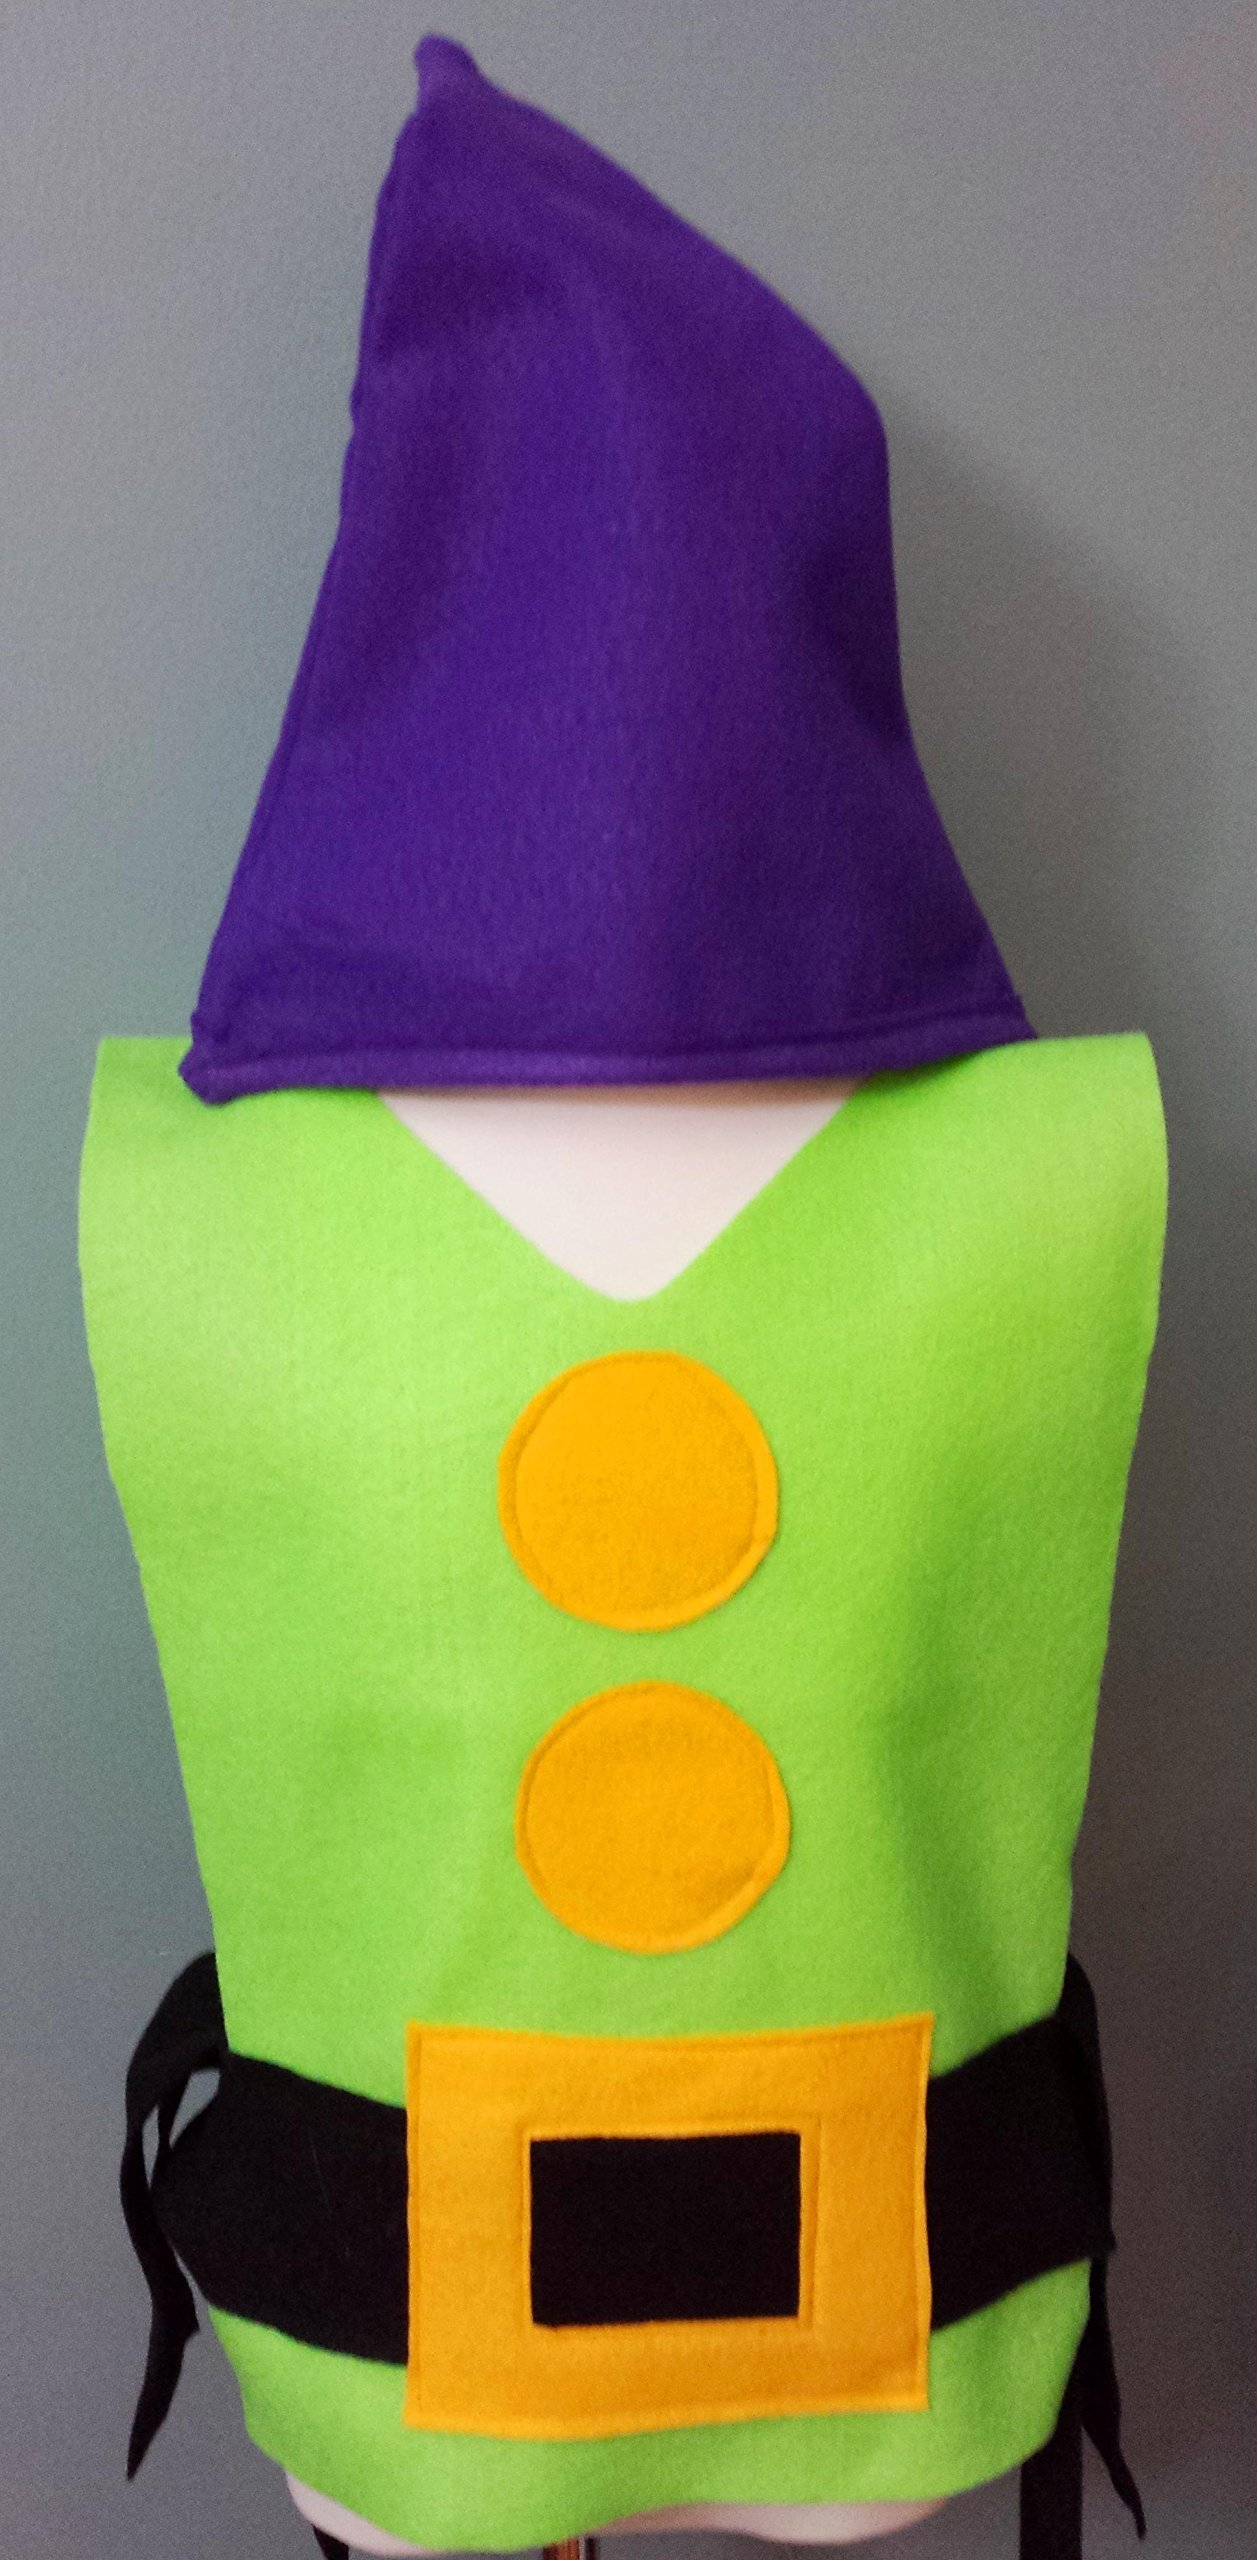 Kids Dopey Dwarf Costume Set (Snow White and the Seven Dwarfs) - Baby/Toddler/Kids/Teen/Adult Sizes by Teatots Party Planning